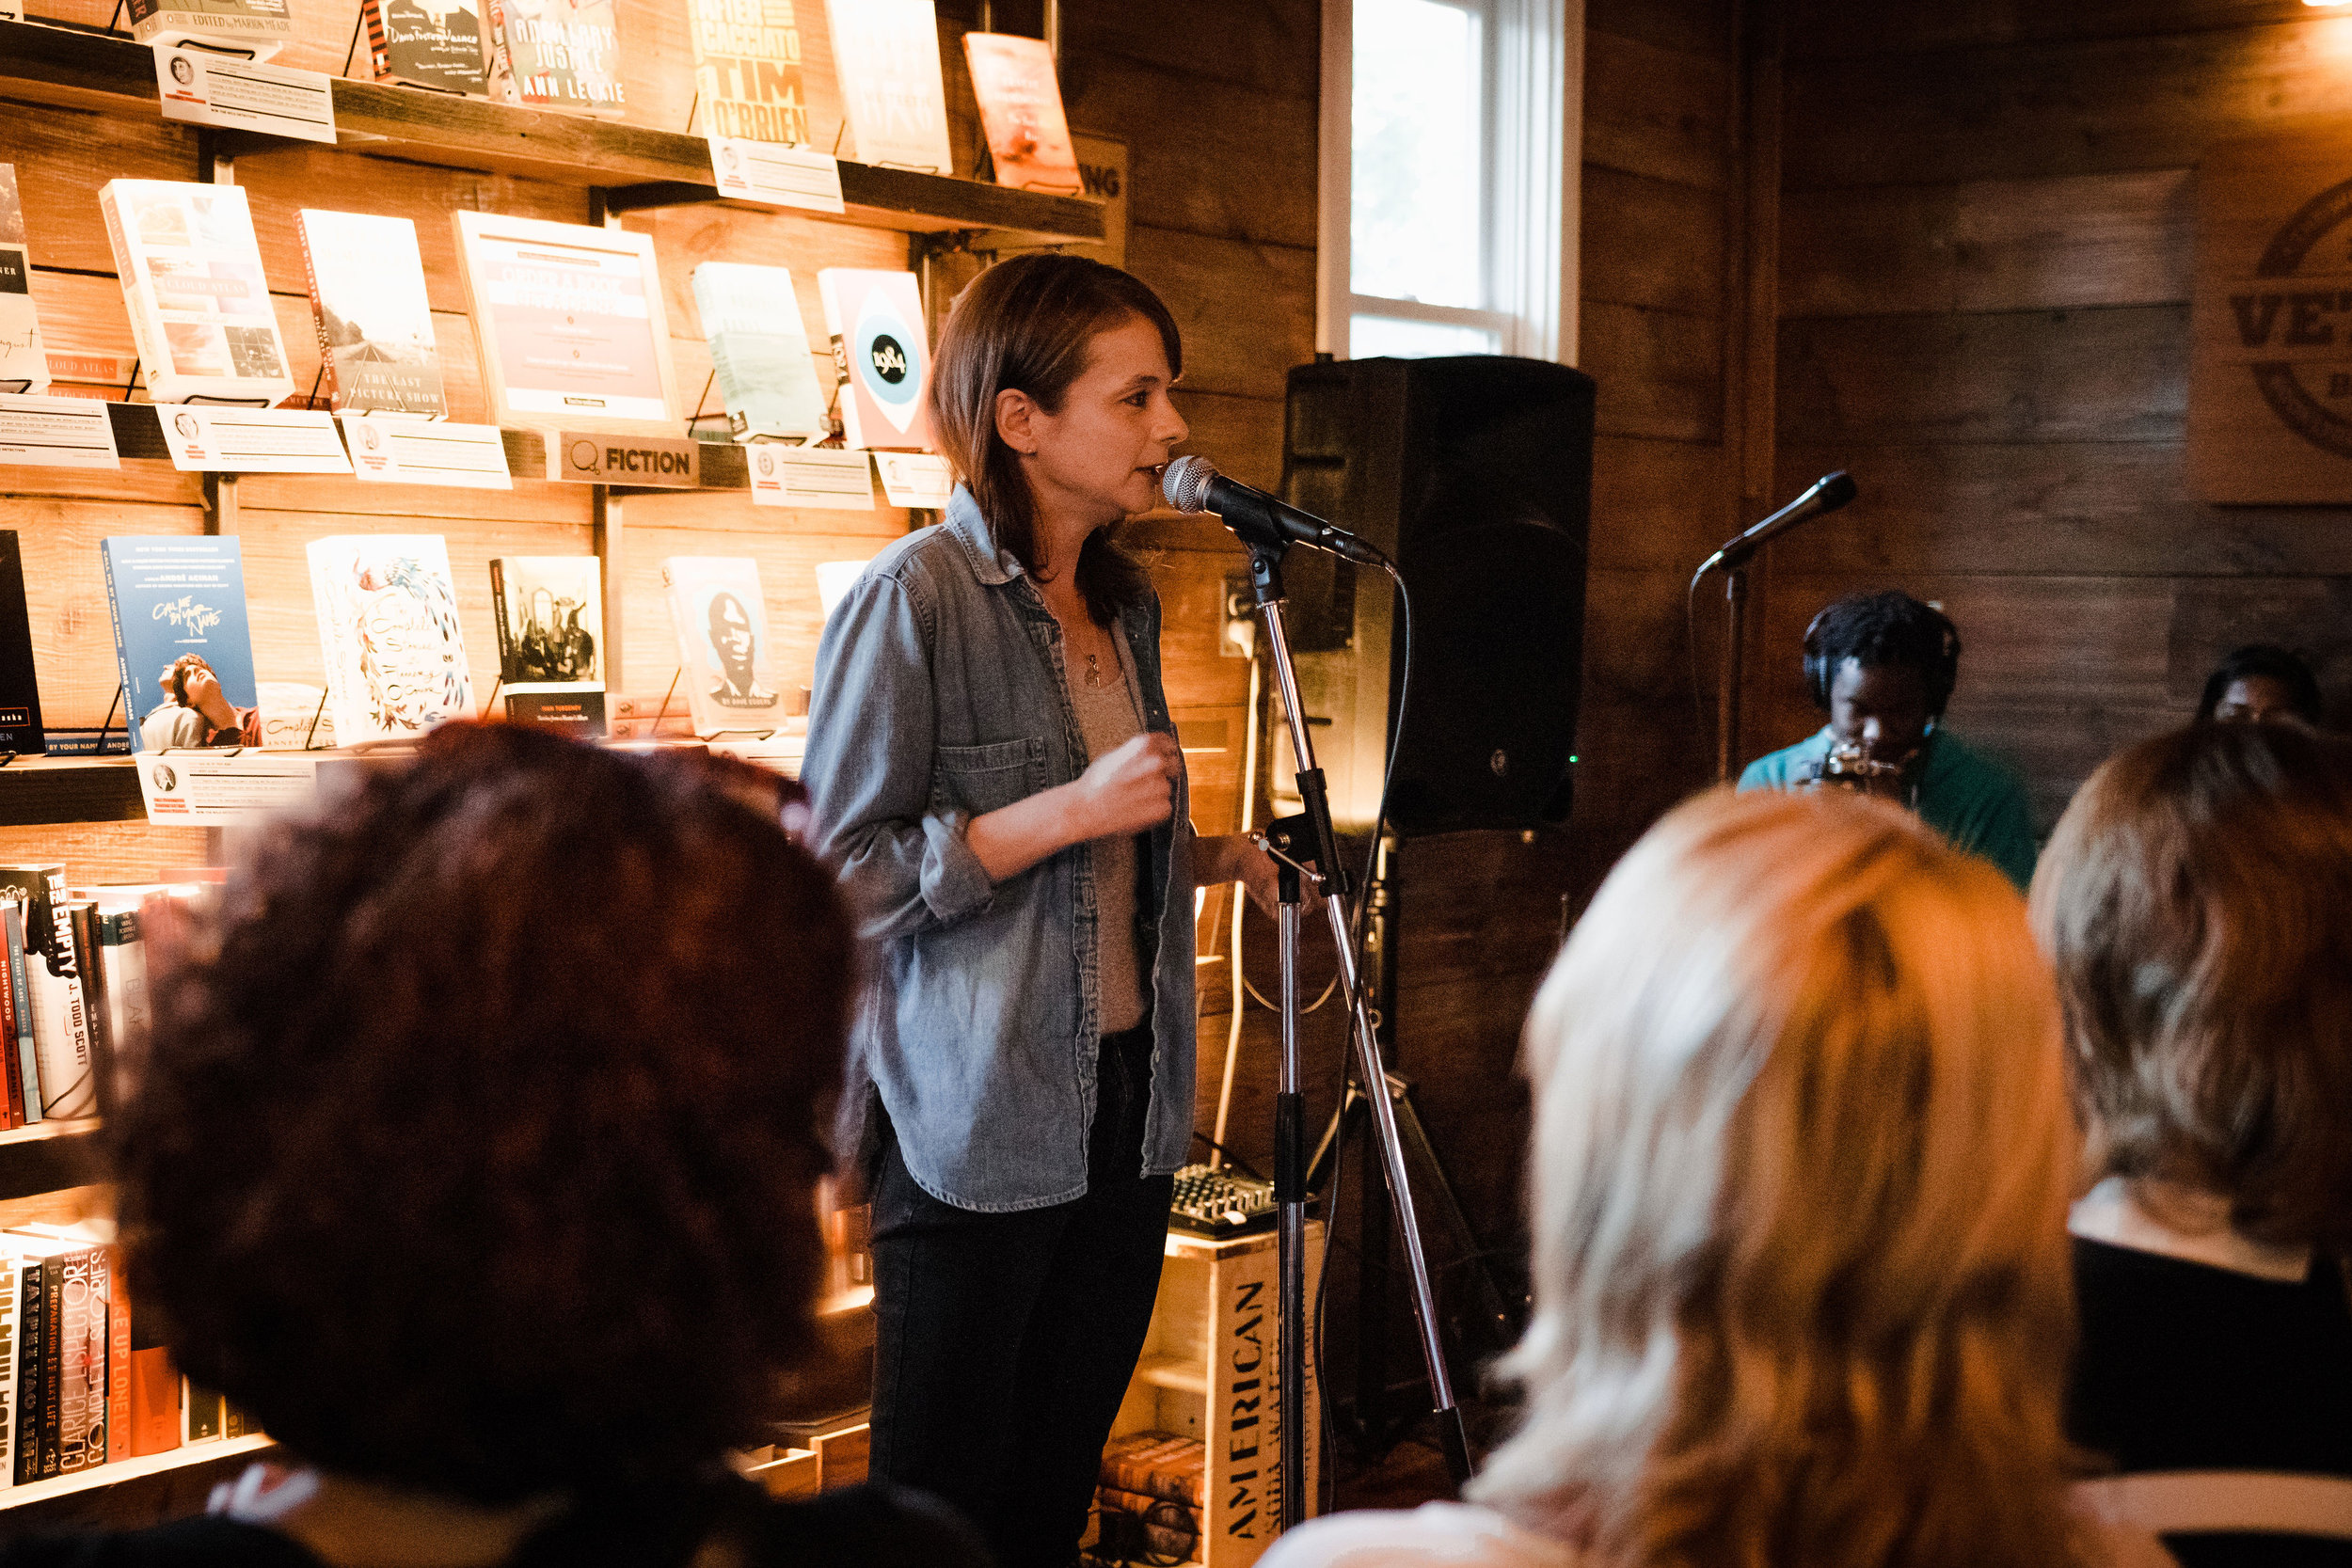 Artistic Director Erin Barker shares her story with our Story Collider audience at Wild Detectives in Dallas, TX in April 2019. Her mother is sitting in the front row (pictured right). Photo by Fallon Stovall.